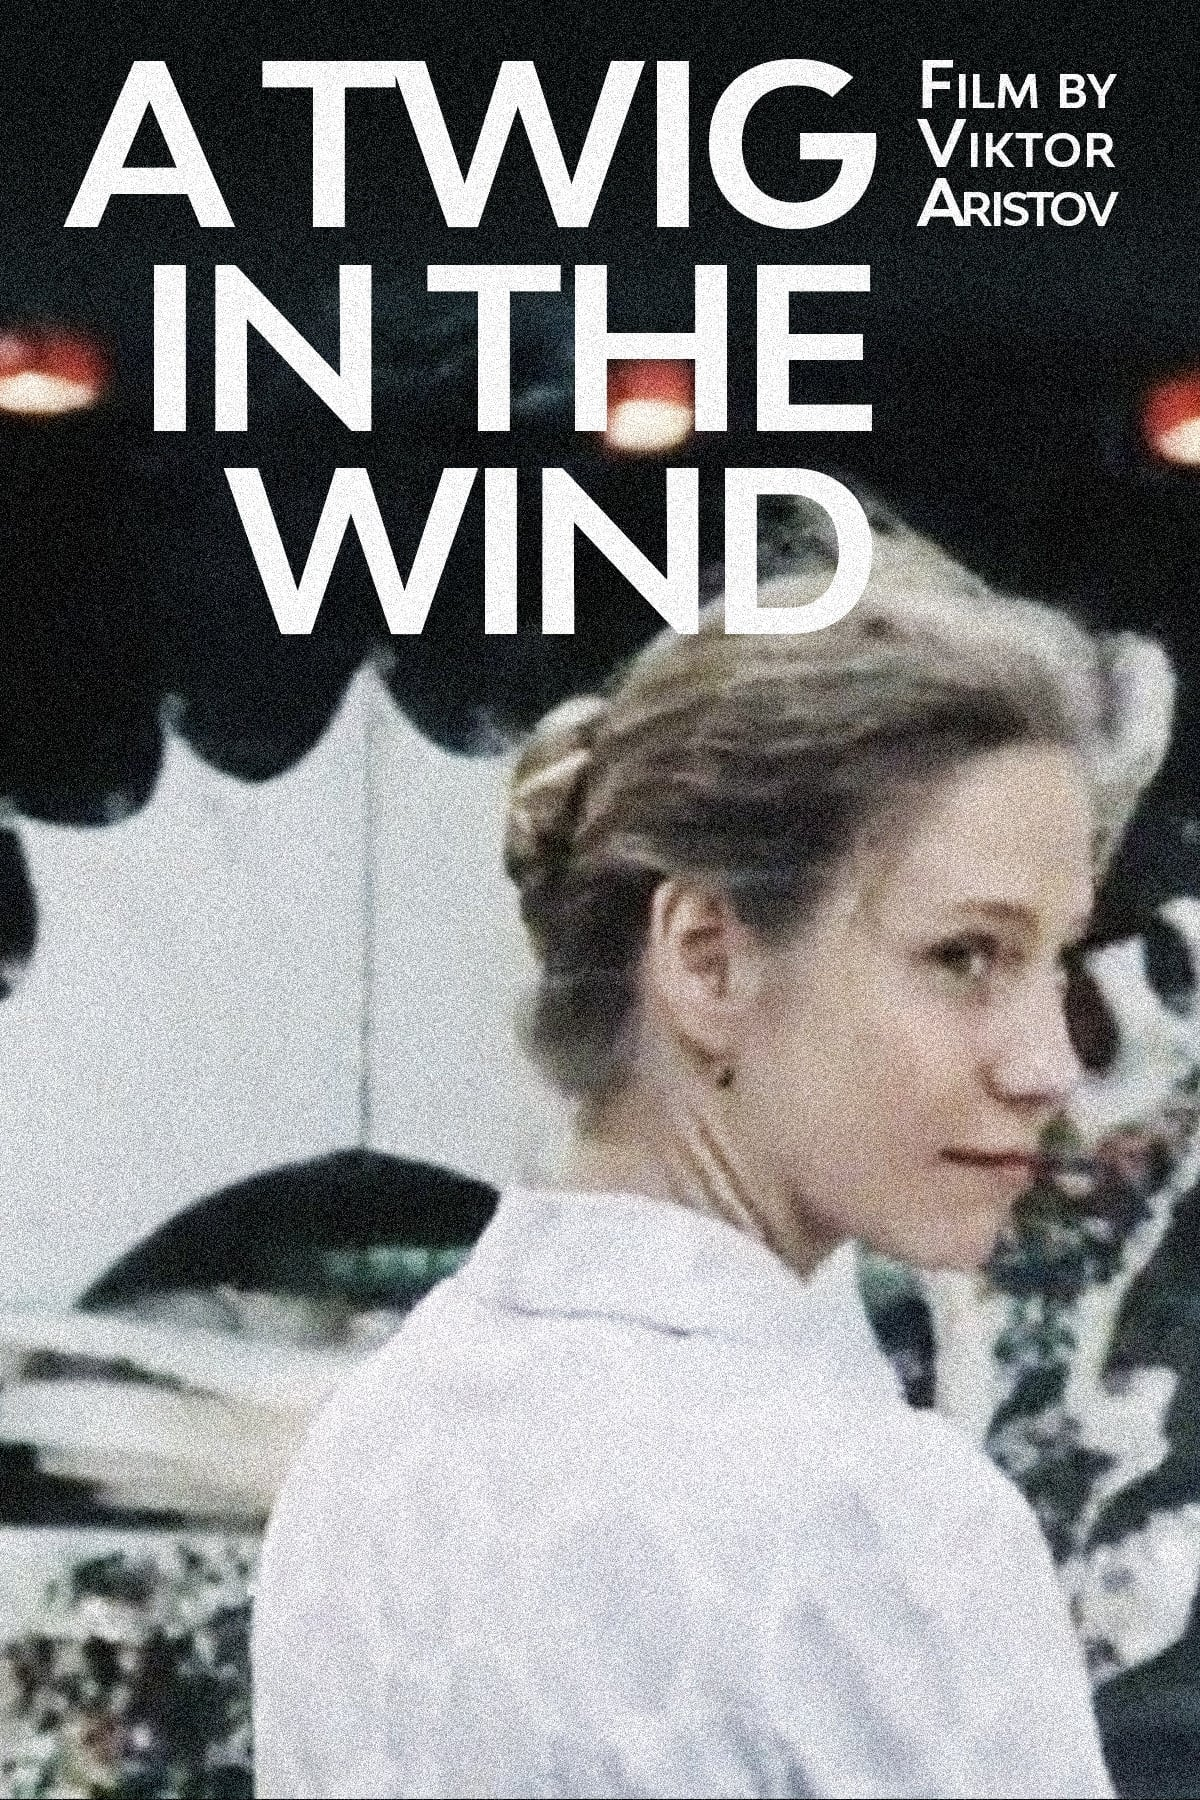 A Twig in the Wind (1980)